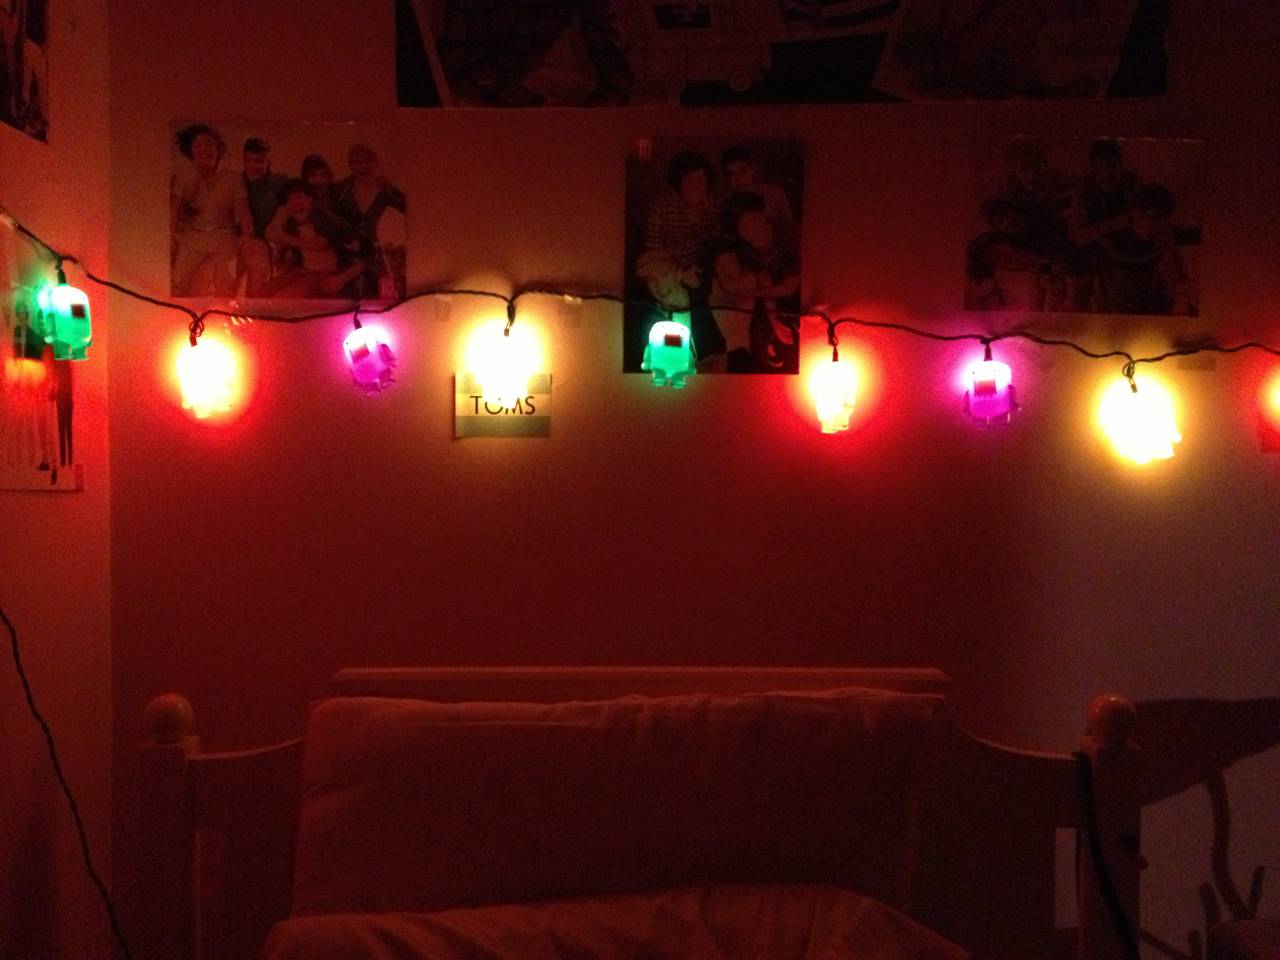 Finally strung my lights! I know you can't tell but they're mini domos and they're so long they go around like my entire room c: